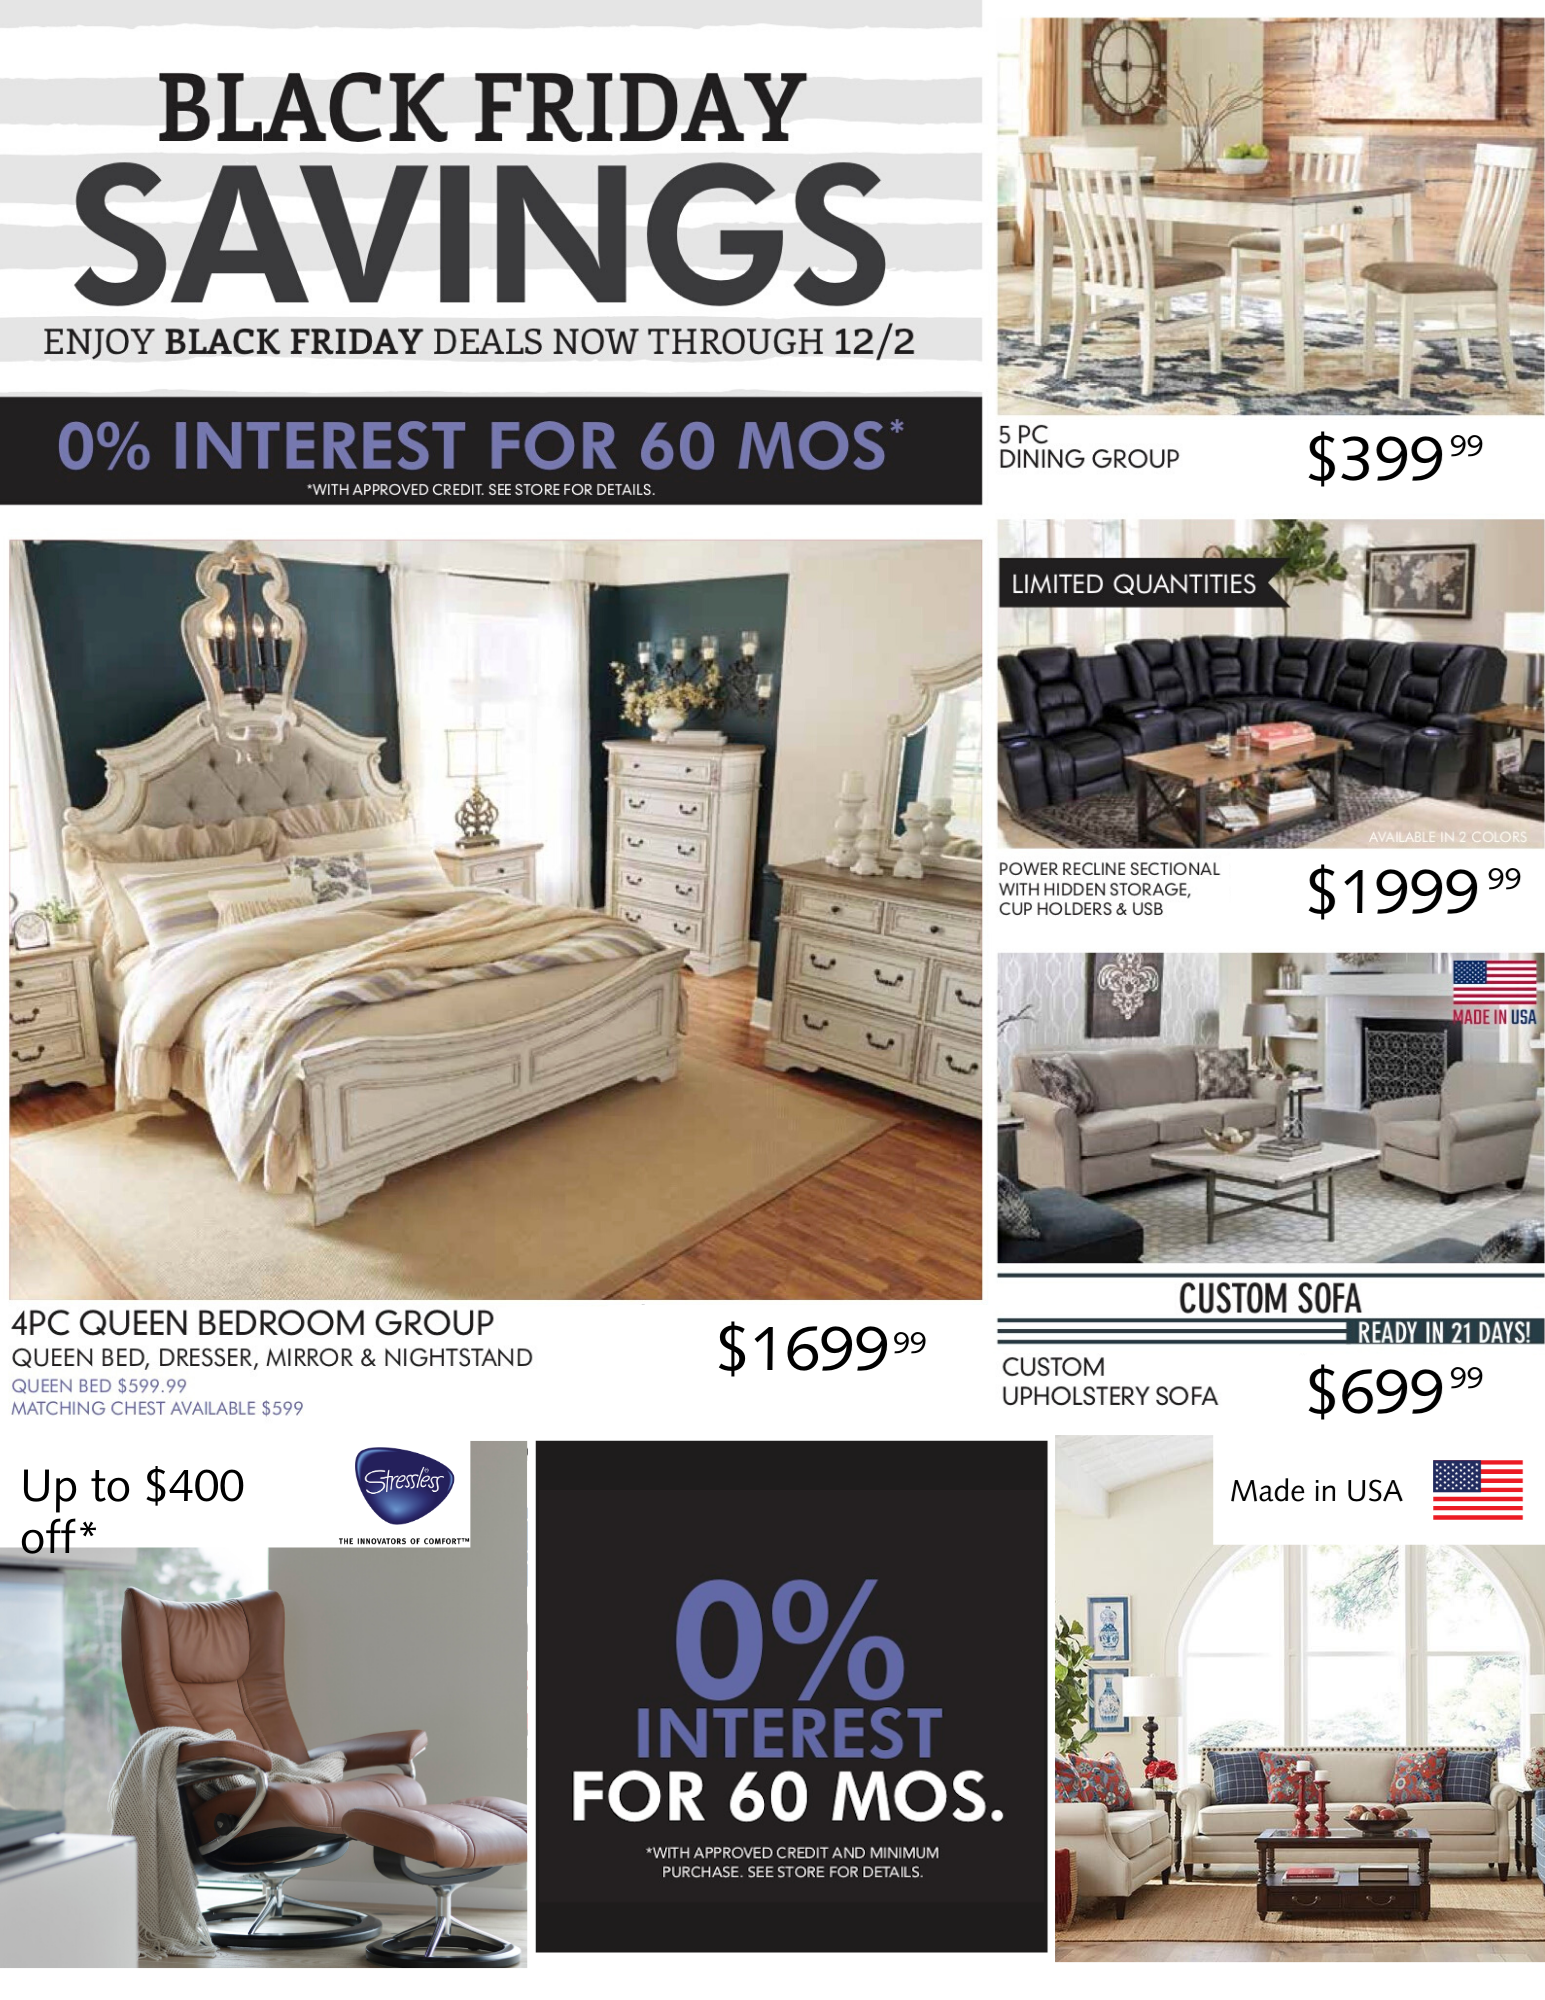 Black Friday Savings at Virginia Furniture Market